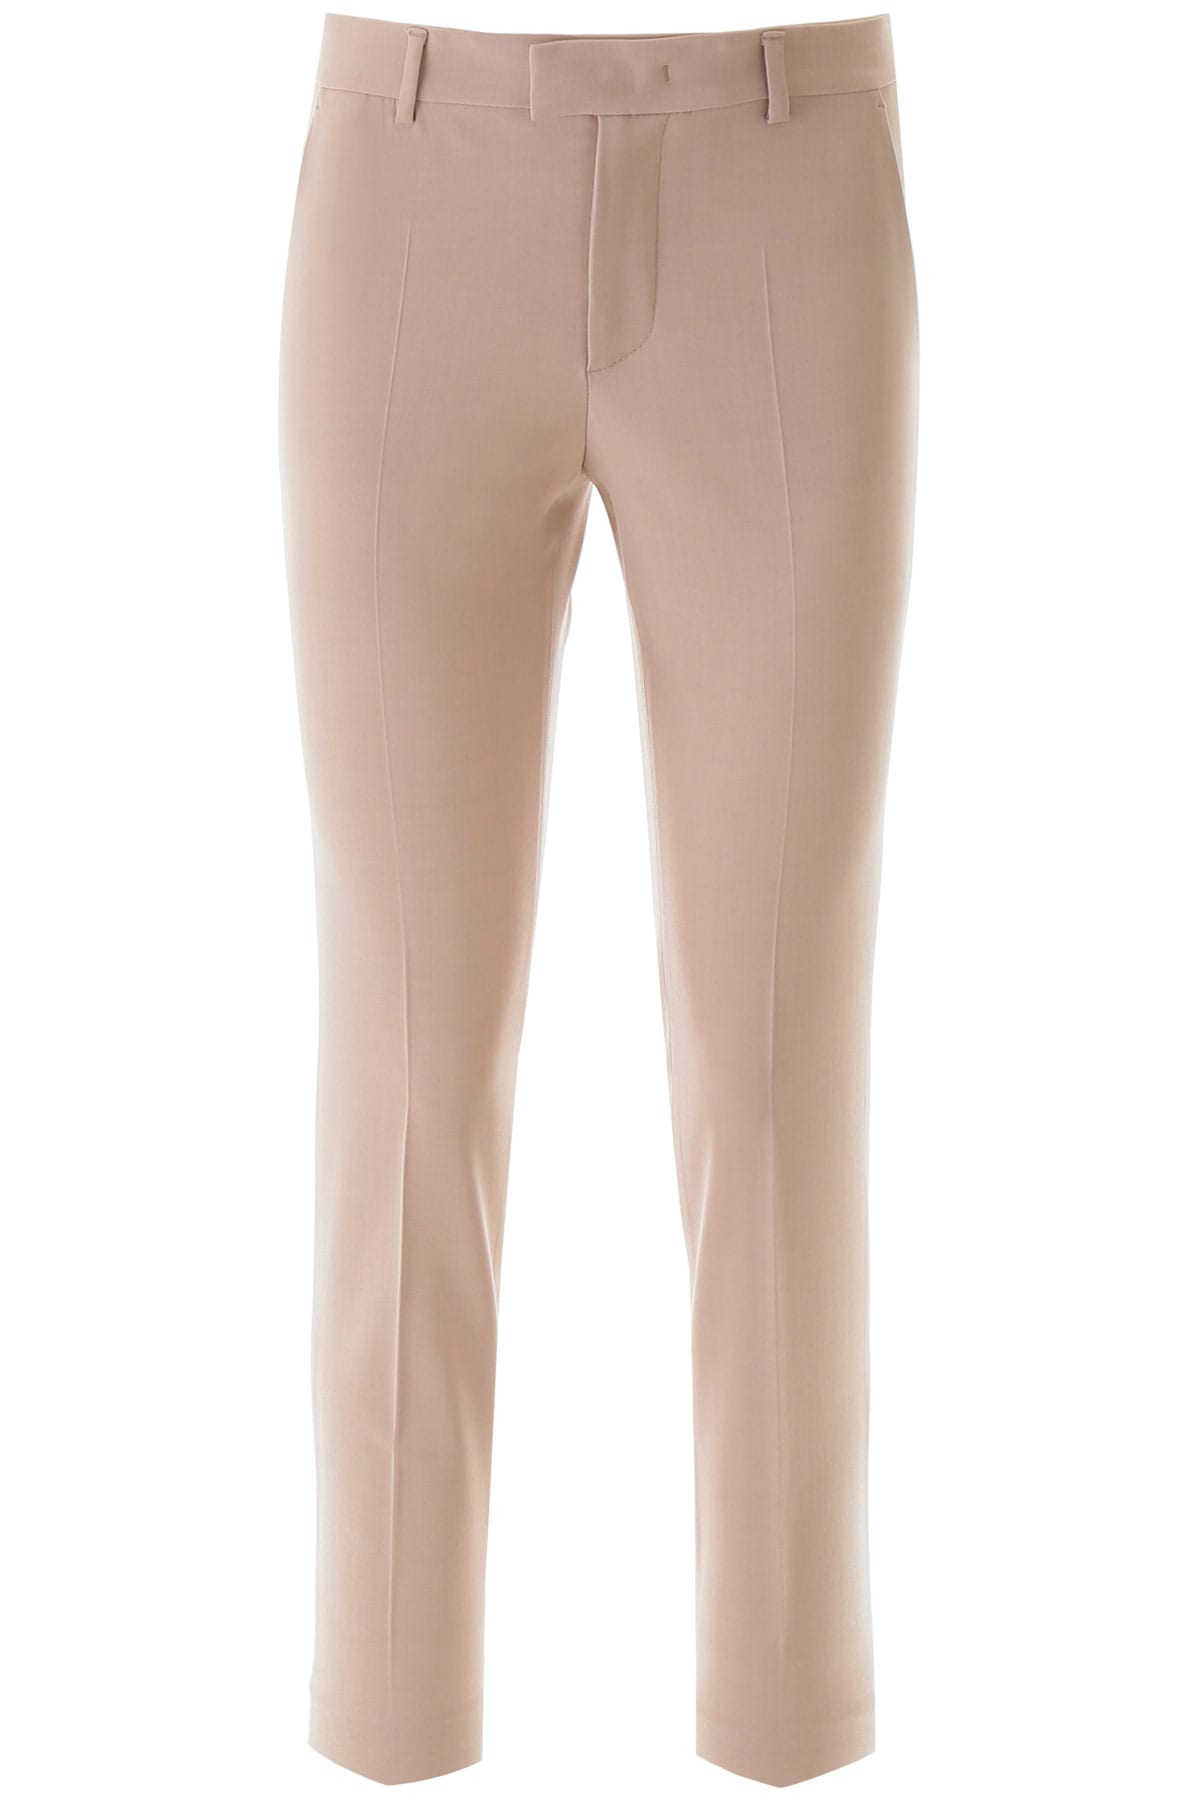 RED Valentino Slim Trousers